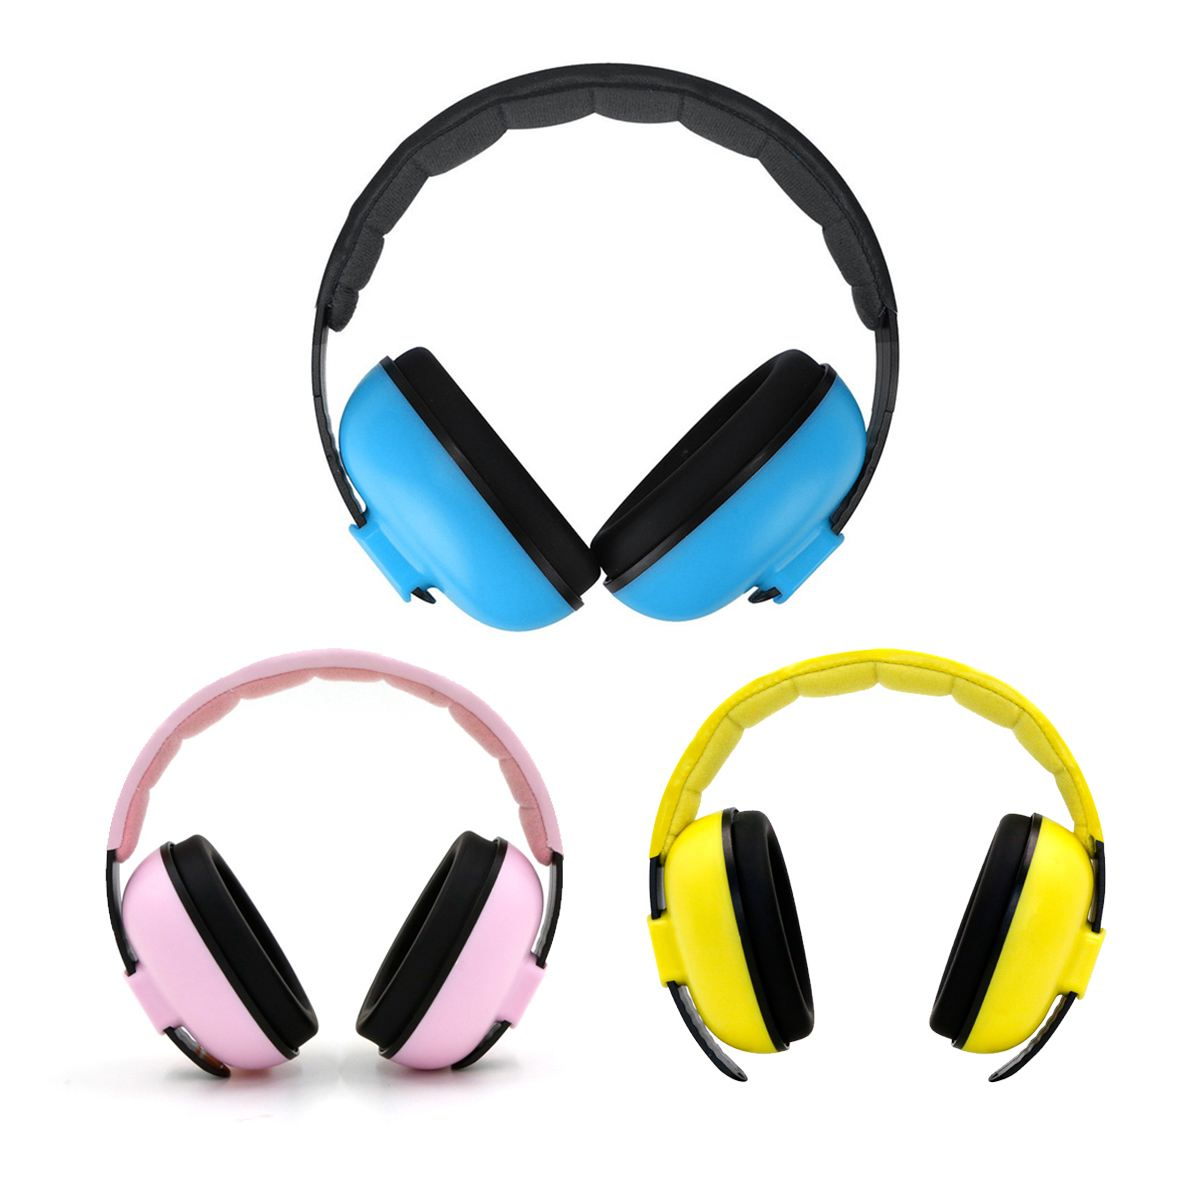 3 Colors Children Kids Ear Muffs Hearing Protection Noise Reduction Ear Protector With Ear Cover For Defenders Safety Earphone3 Colors Children Kids Ear Muffs Hearing Protection Noise Reduction Ear Protector With Ear Cover For Defenders Safety Earphone